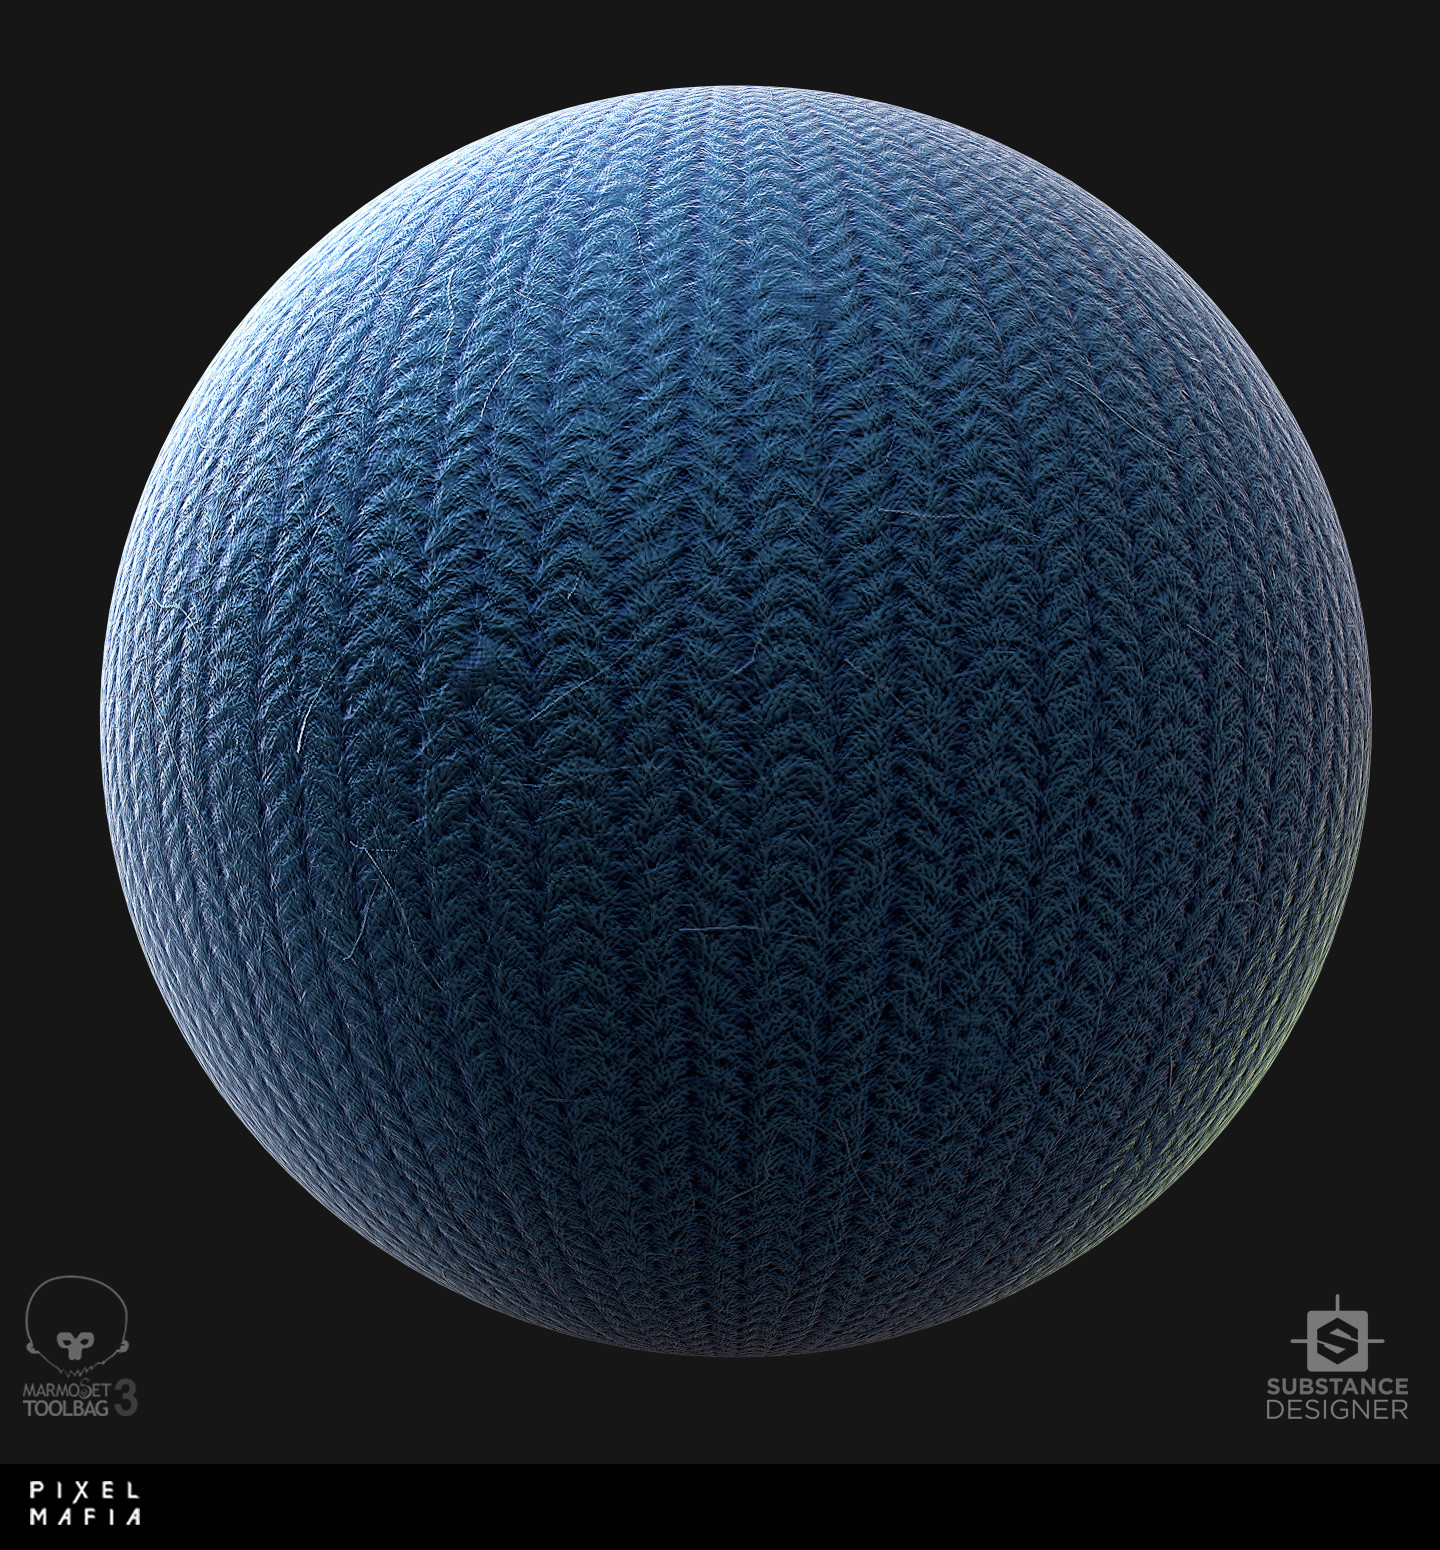 ArtStation - Wool material (substance designer) , John Dary